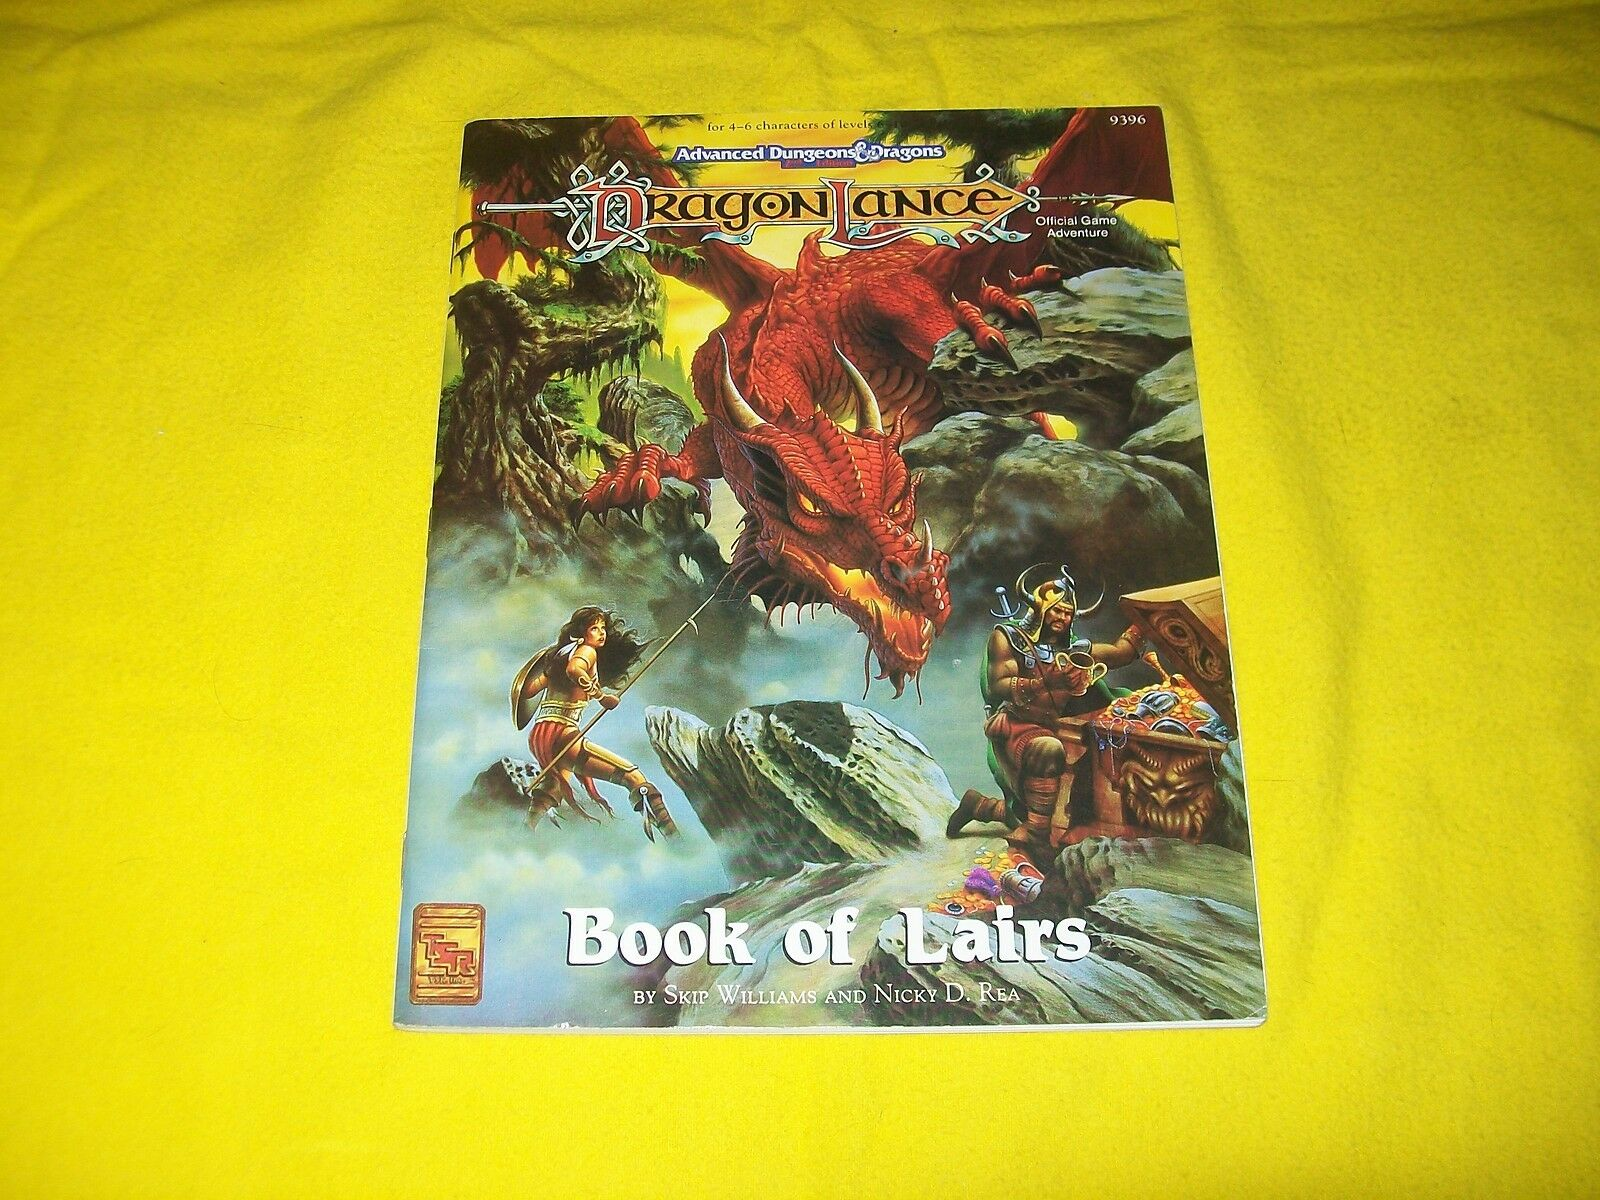 BOOK OF LAIRS DRAGONLANCE DUNGEONS & DRAGONS AD&D 2ND EDITION TSR 9396 - 1